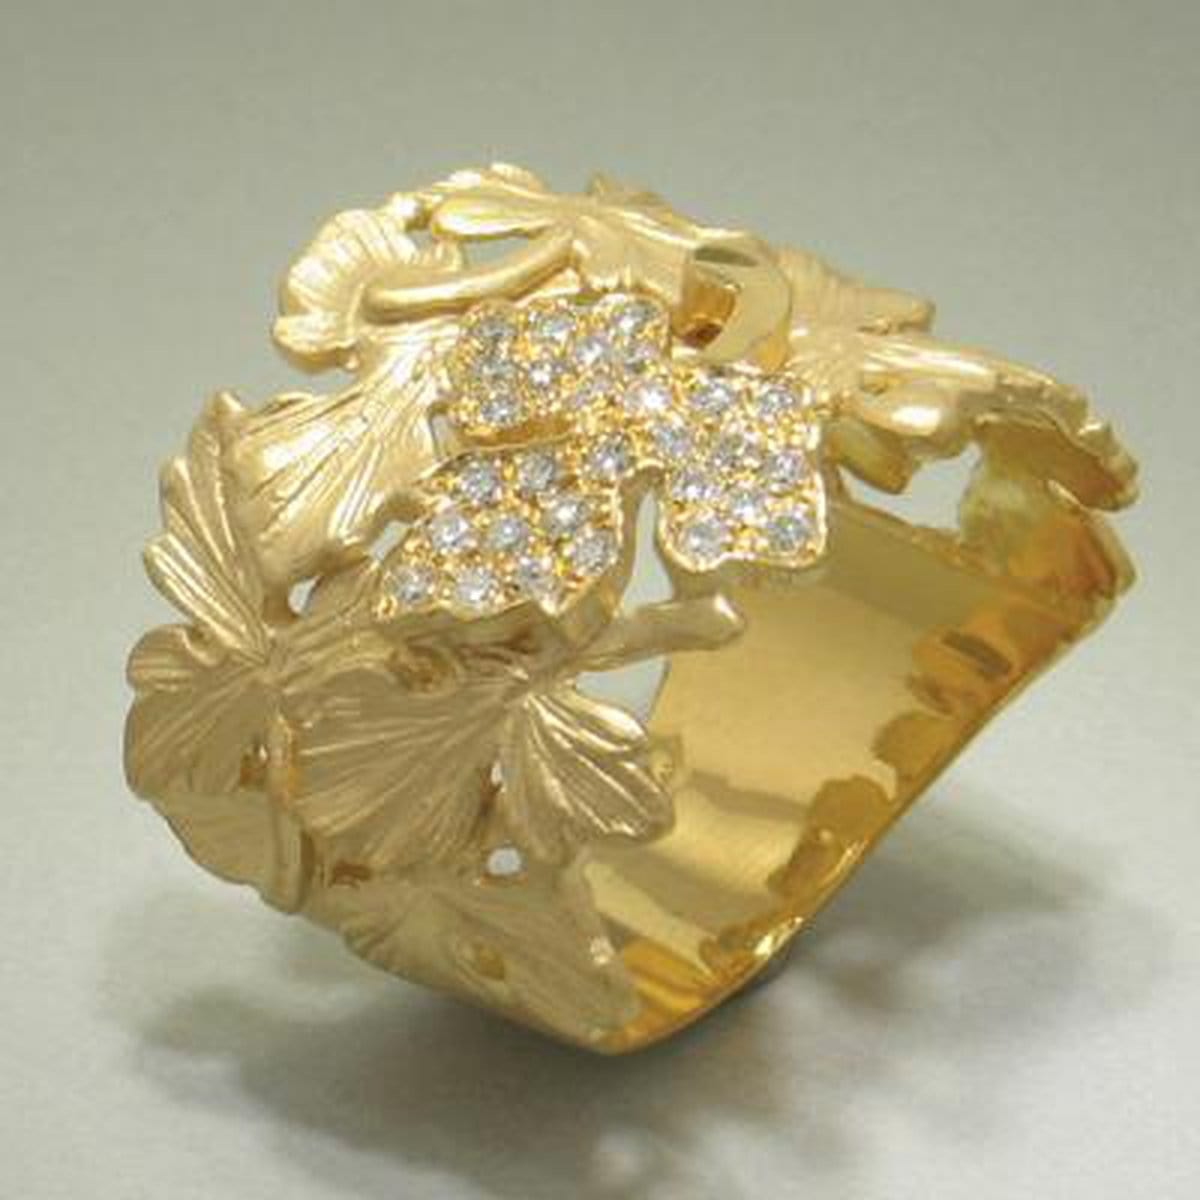 Marika Diamond & 14k Gold Ring - M4030-Marika-Renee Taylor Gallery